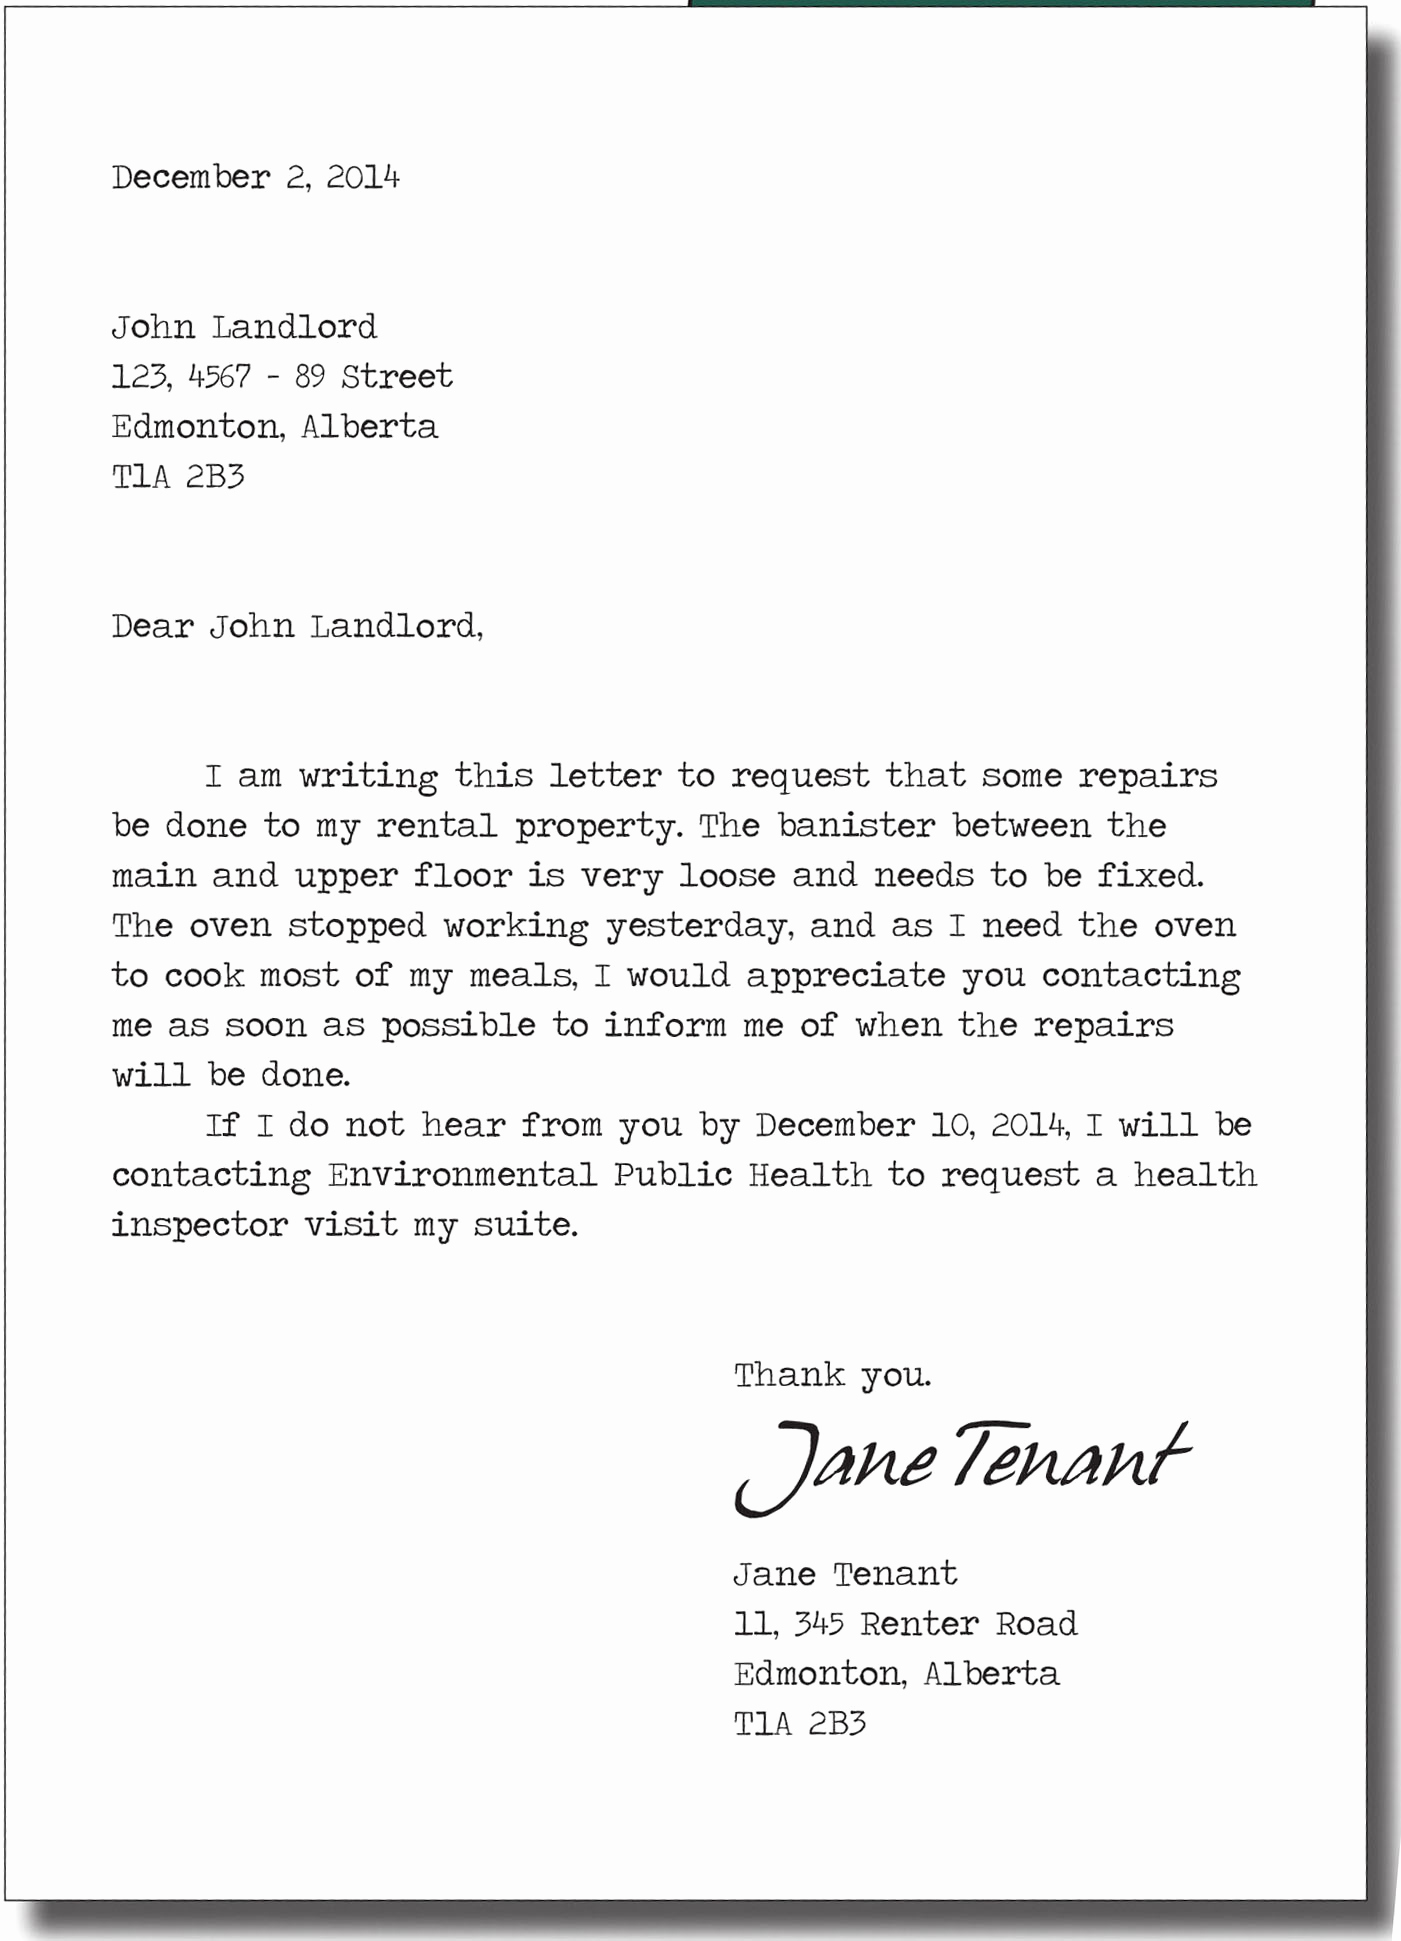 Sample Letter to Landlord Fresh Repairs Cplea Landlord and Tenant